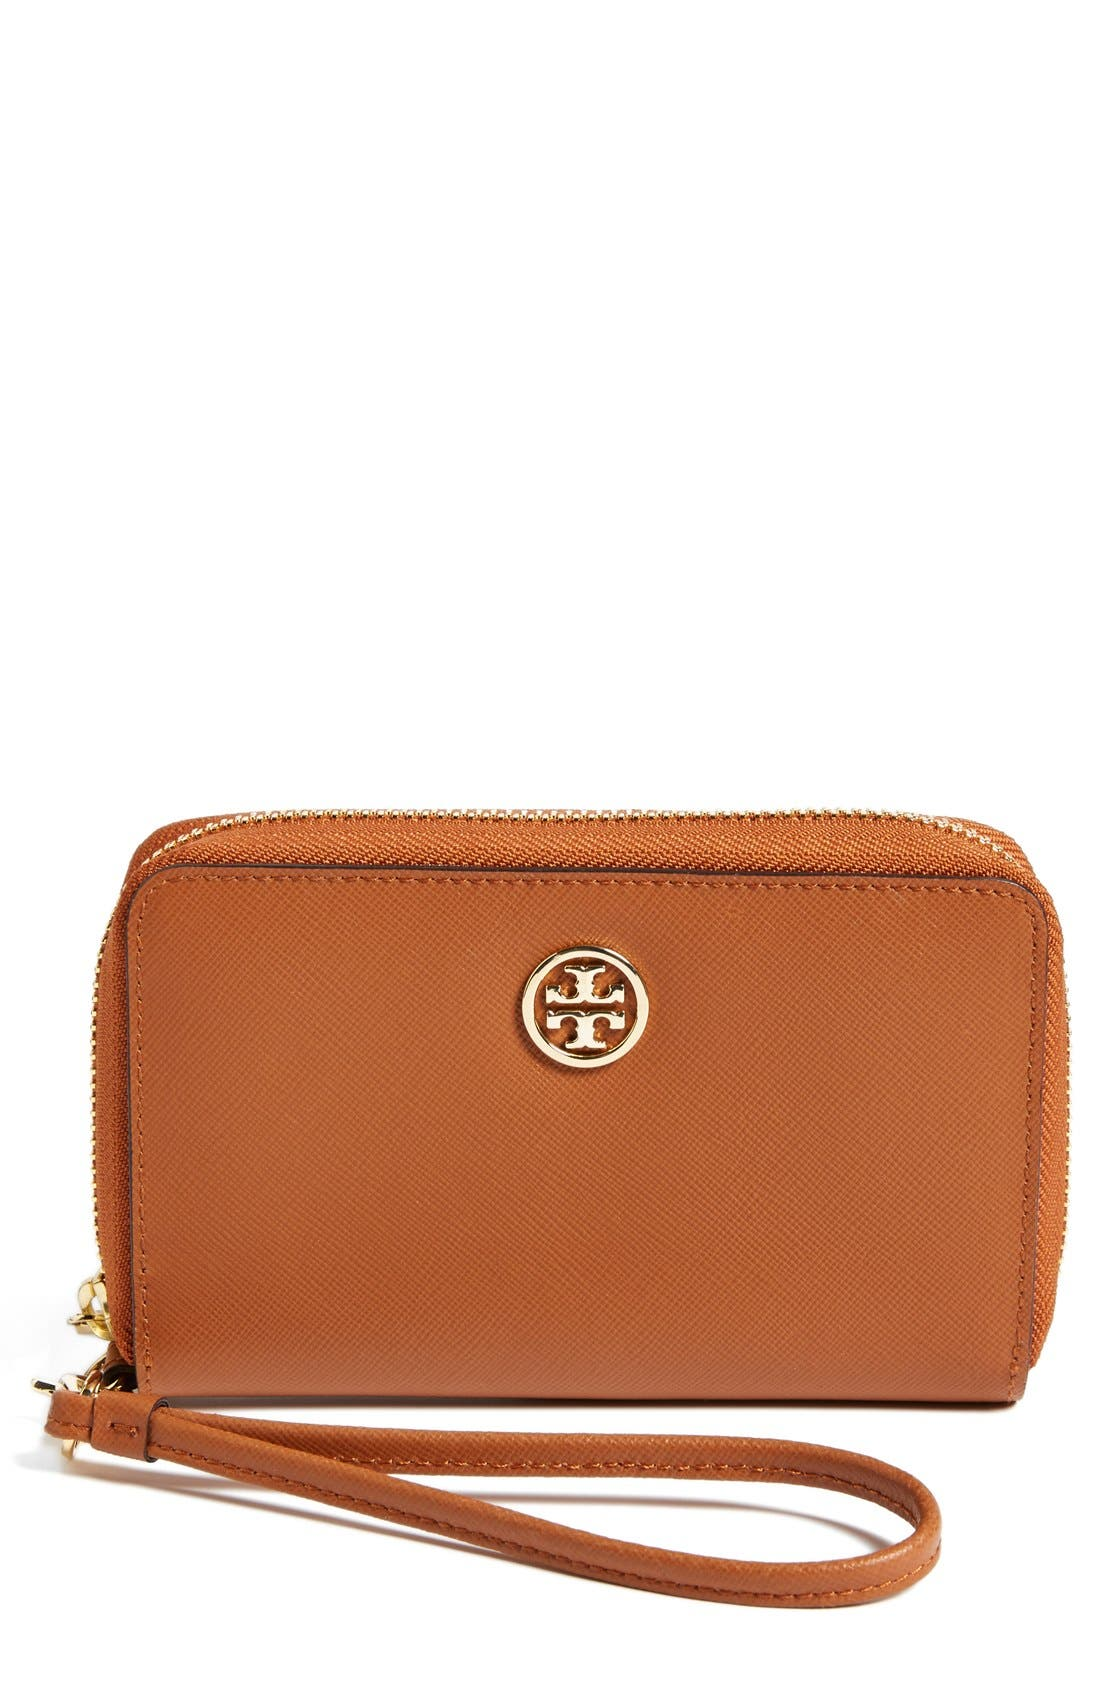 Alternate Image 1 Selected - Tory Burch 'Robinson' Wristlet Wallet